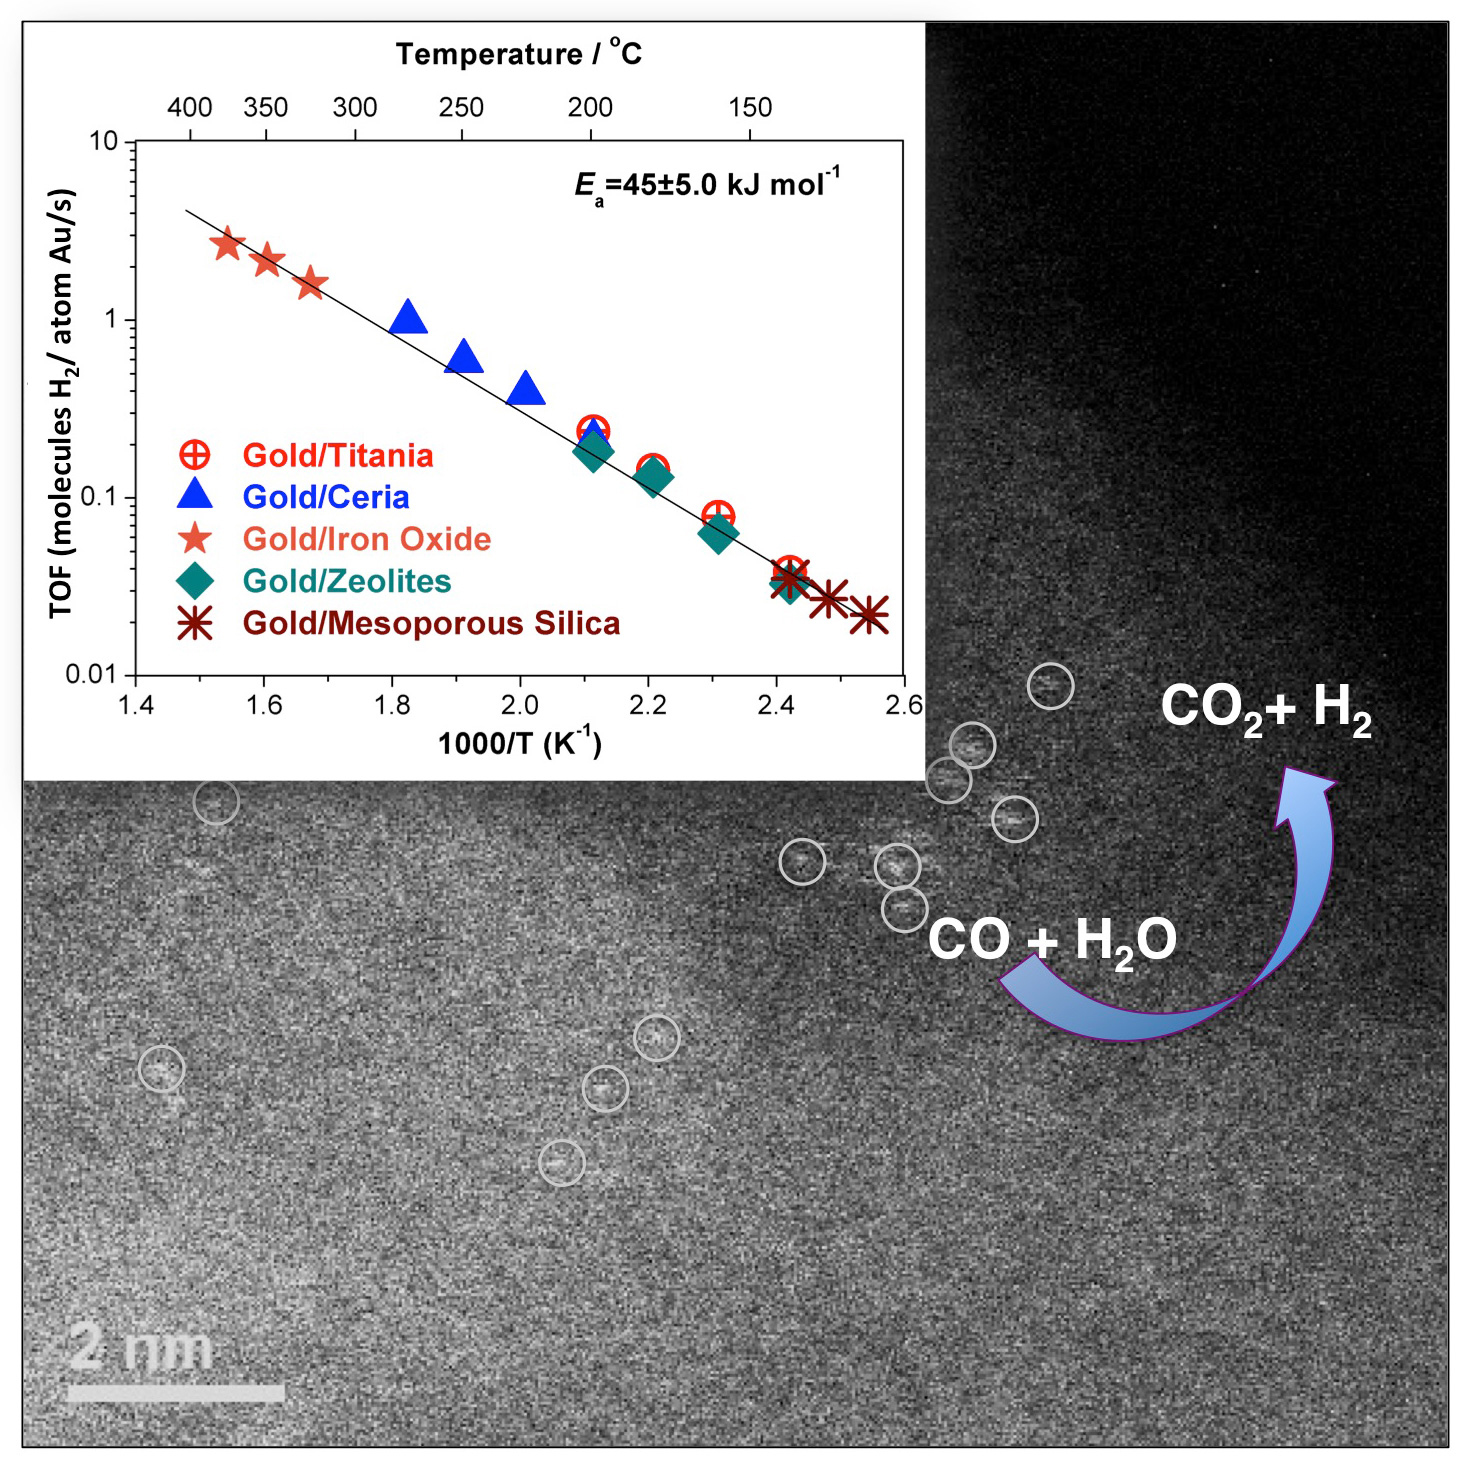 Single-Atom Gold Catalysts for Low-Temperature, Low-Cost